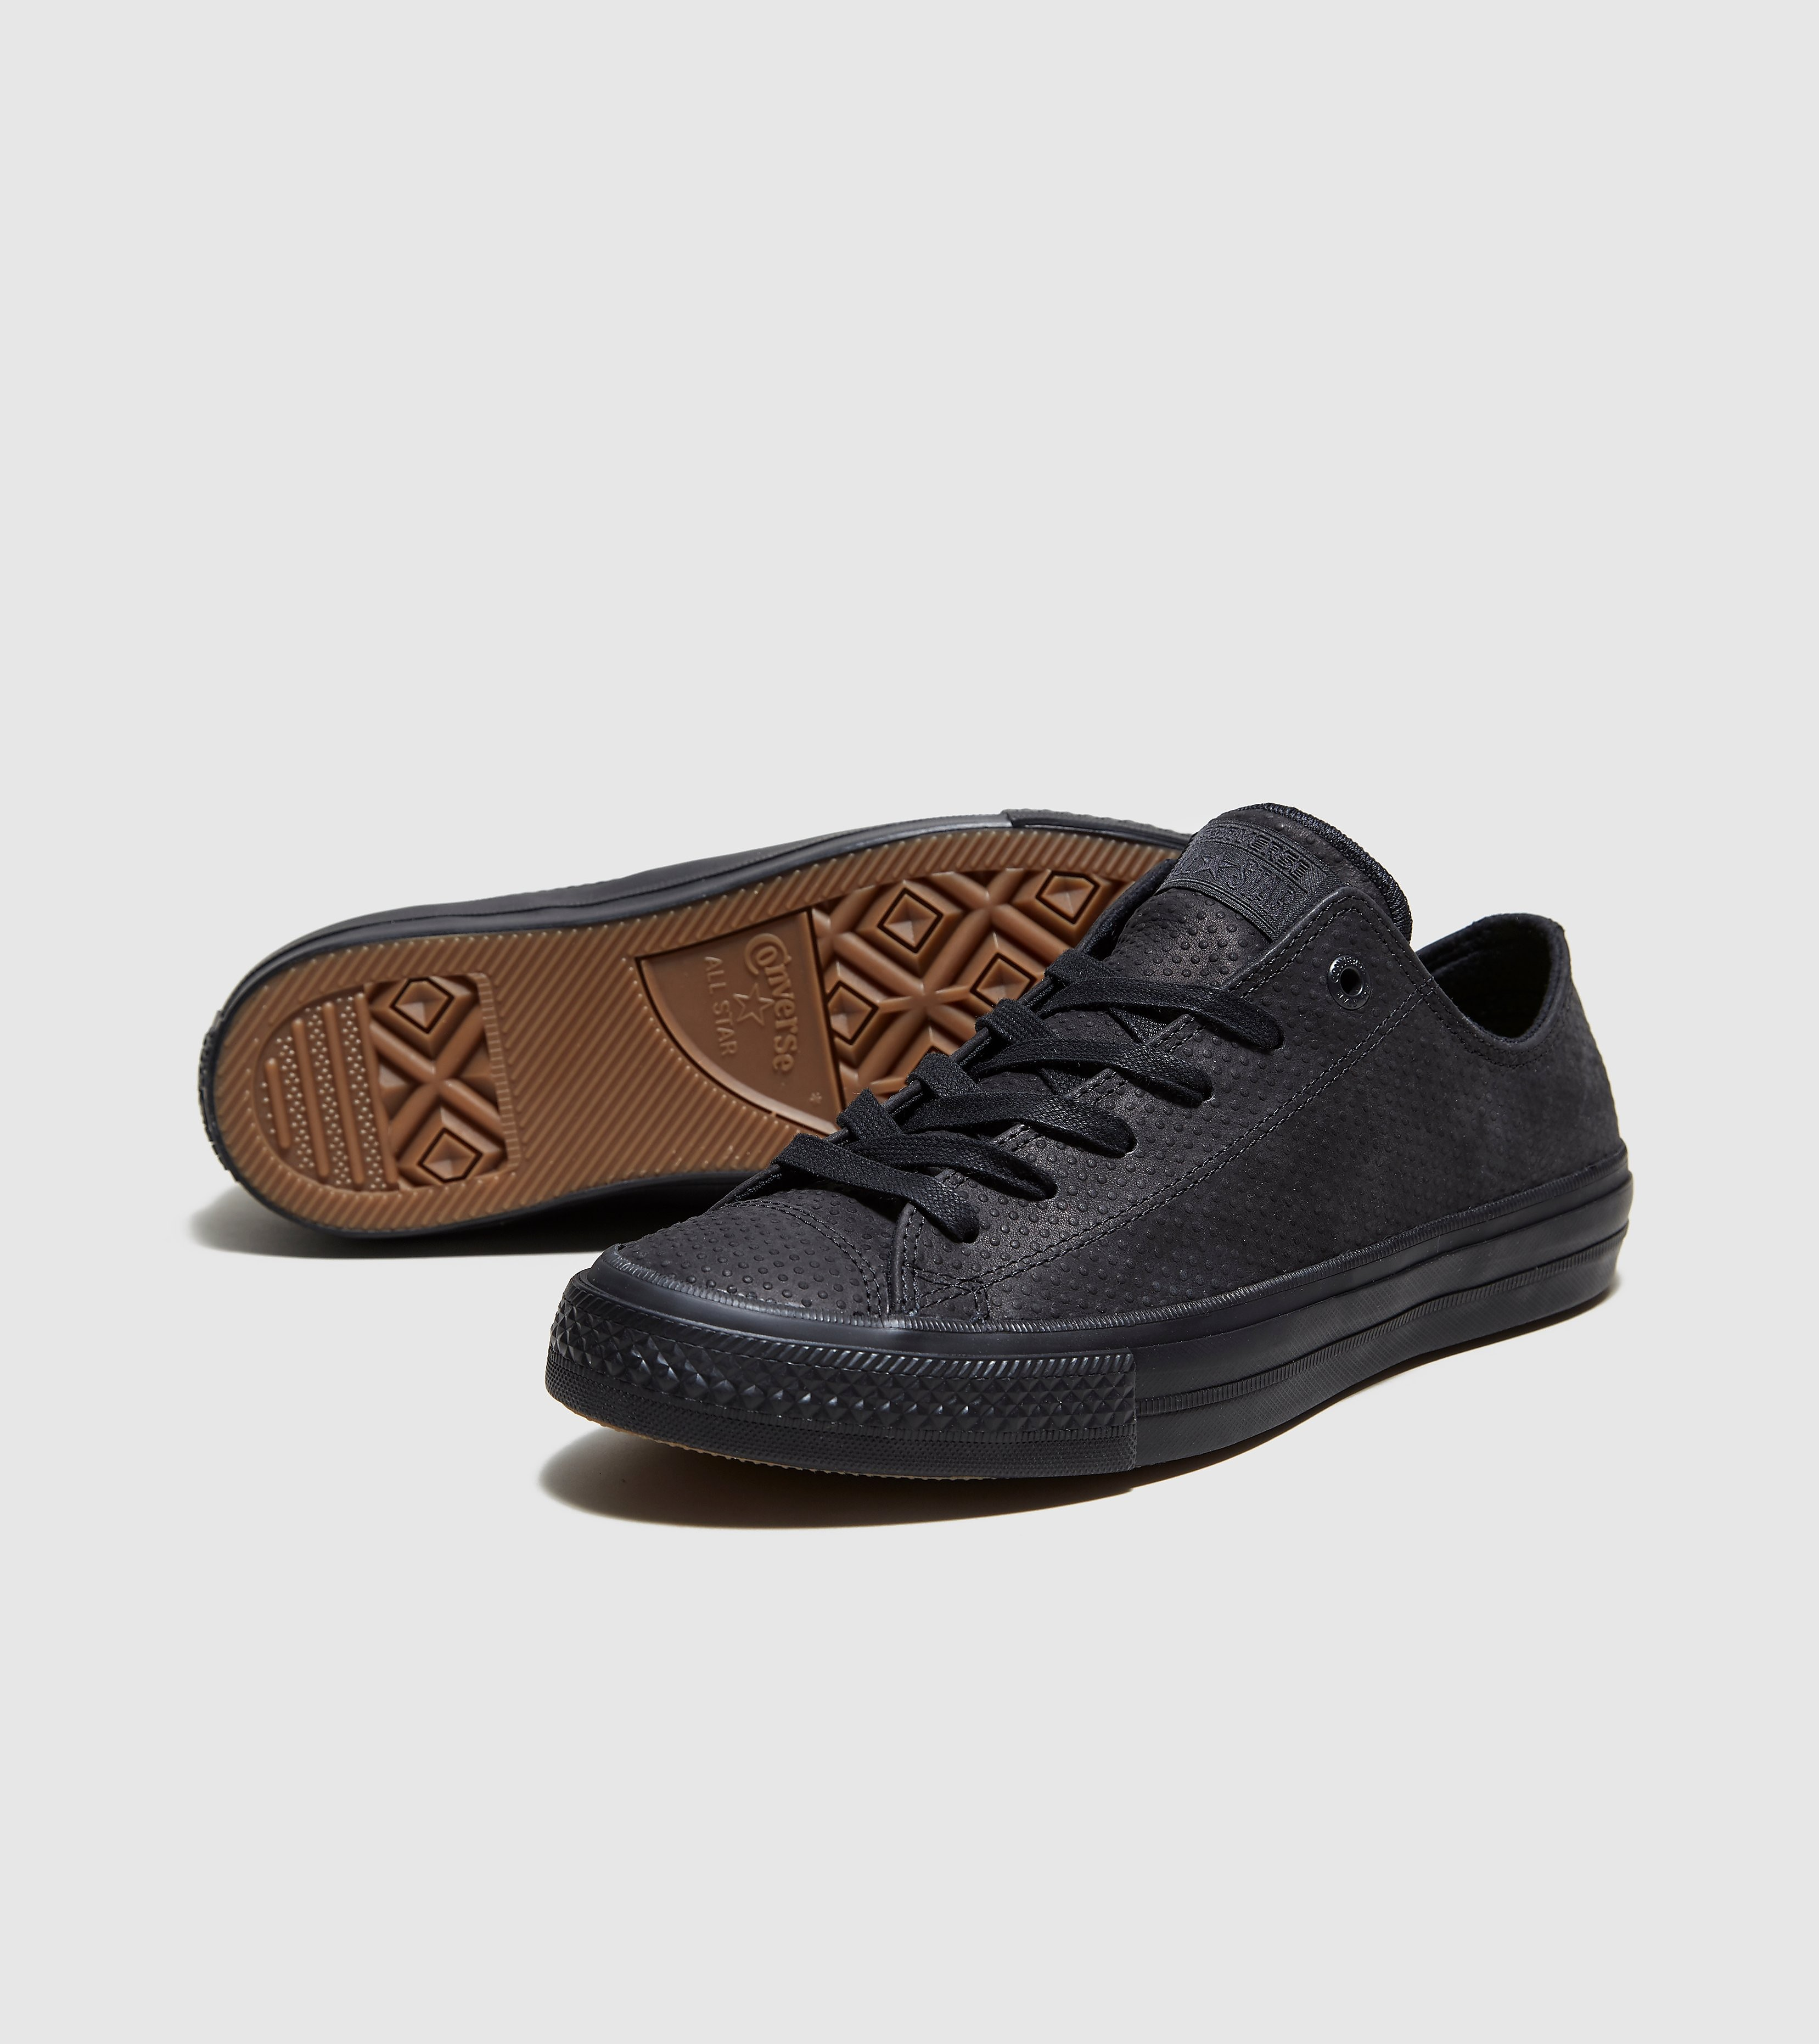 Converse Chuck Taylor All Star Perforated